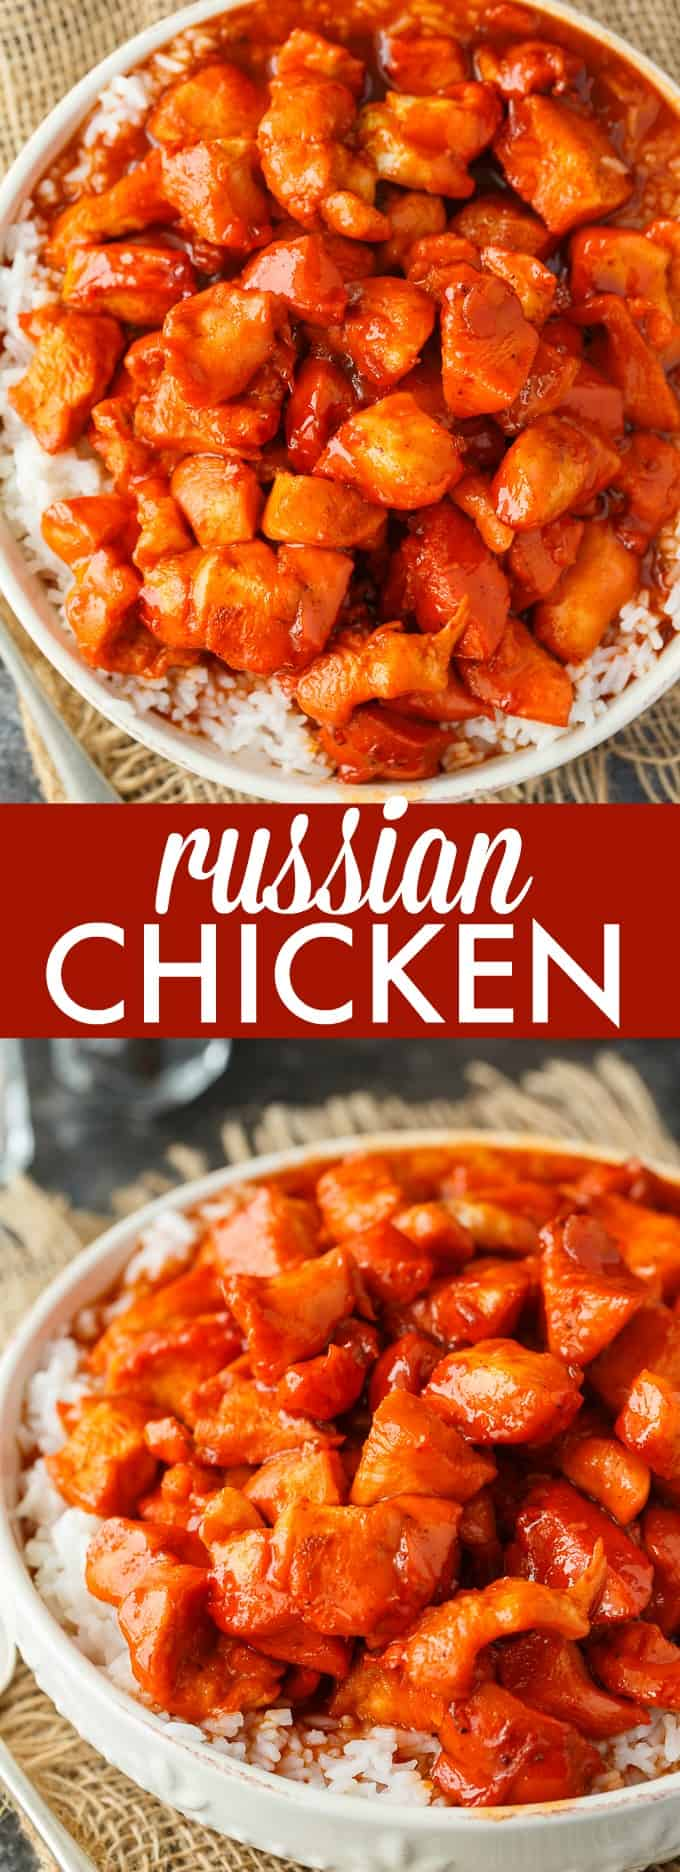 Russian Chicken - Sweet and tangy! This easy dinner recipe has a flavorful sauce made with Russian dressing, onion soup mix and apricot jam. Serve on a bed of rice for a delicious family meal.